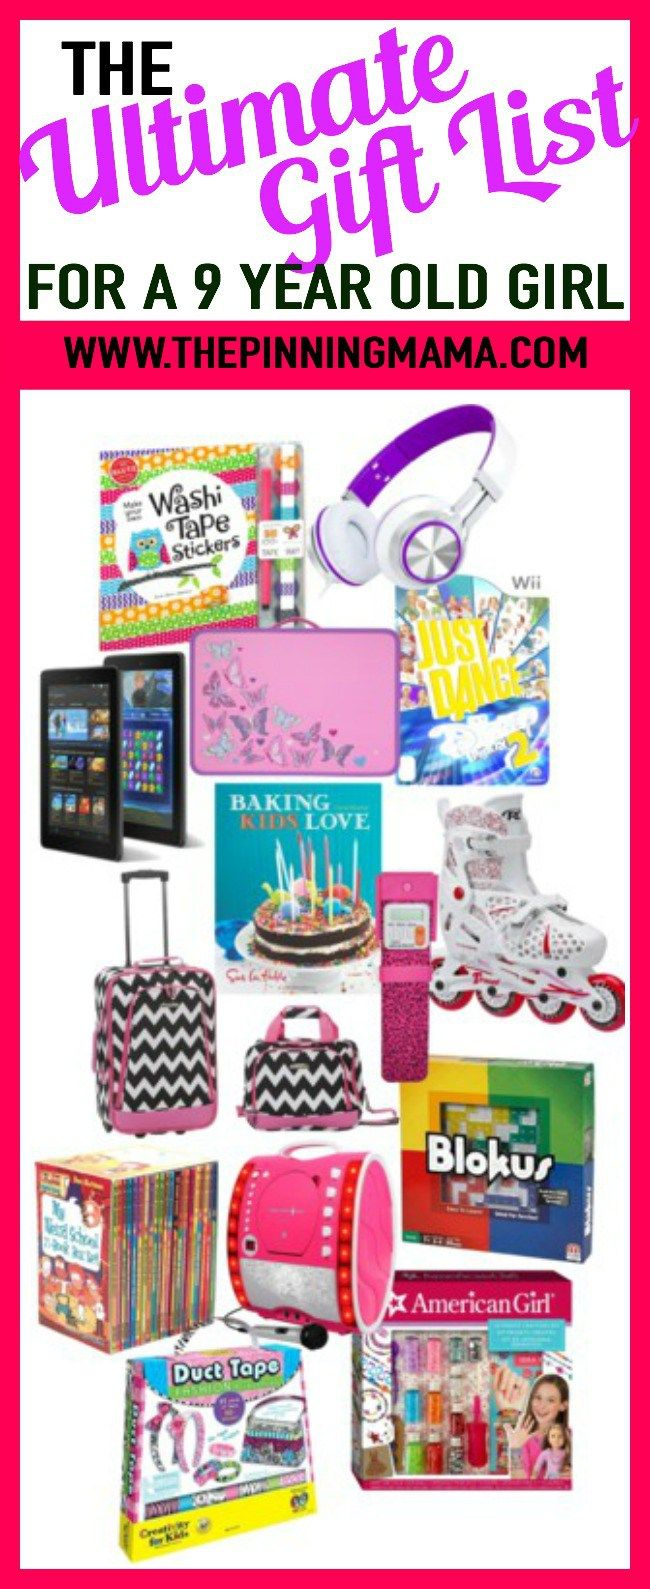 The Ultimate List Of Gift Ideas For A 9 Year Old Girl See 25 Best Put Together By 2 Moms With 6 Kids Between Them Presents Birthday